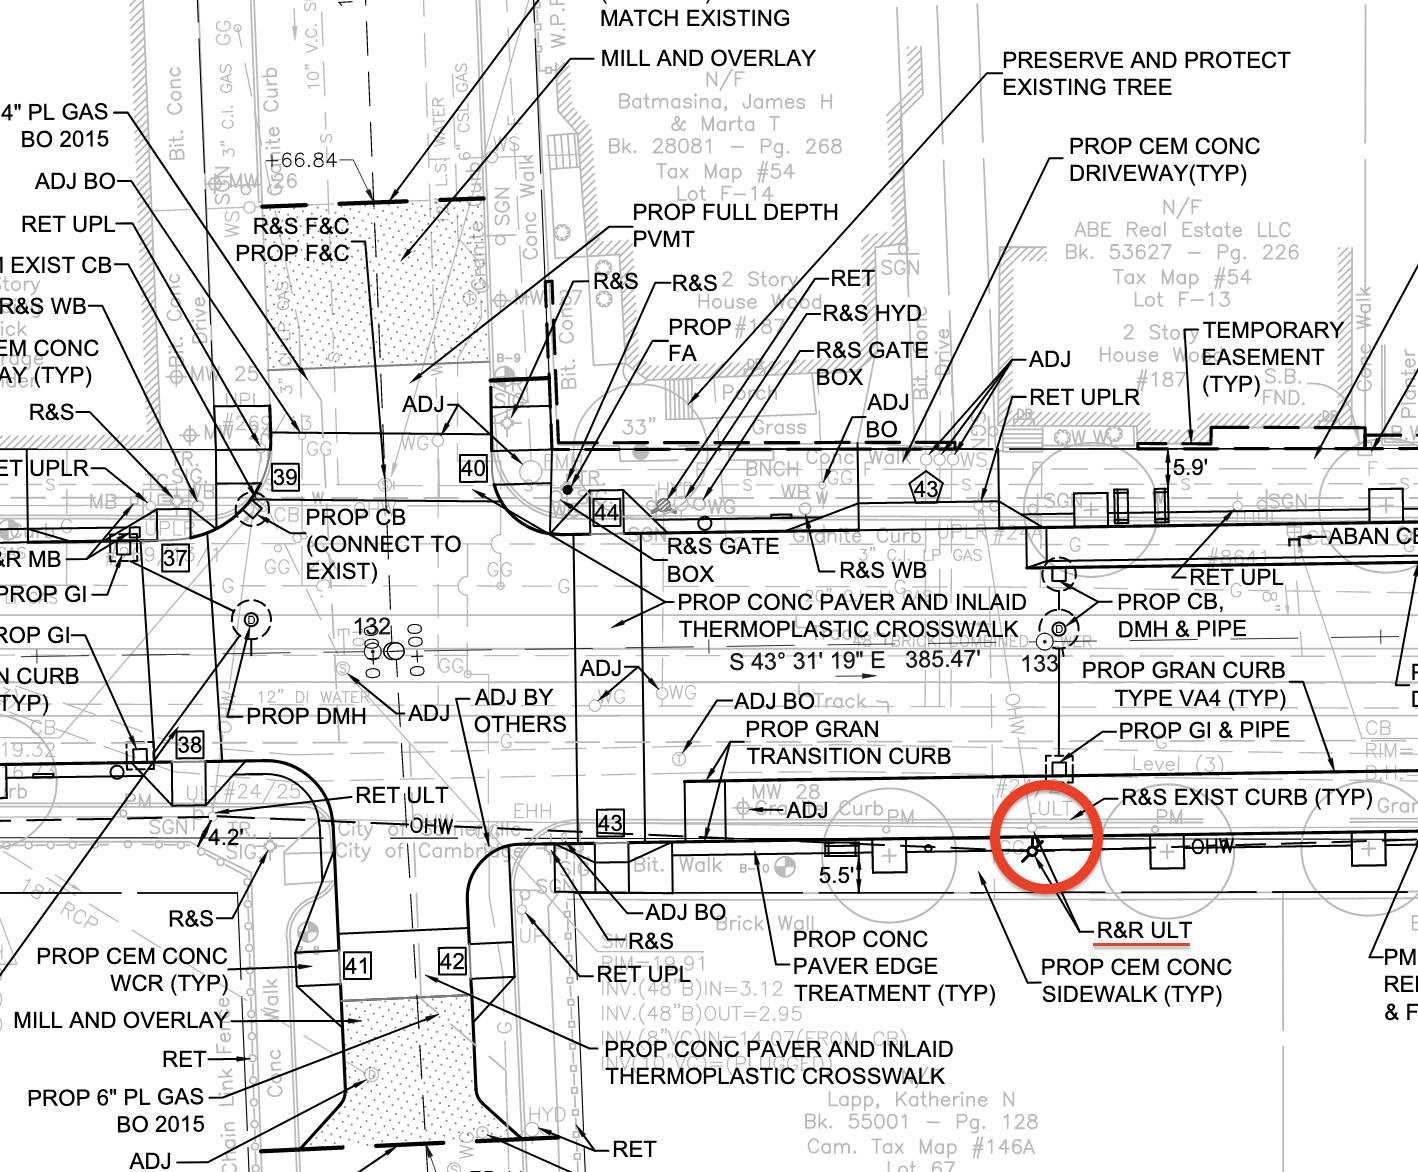 """A detail from construction plans posted on the City of Somerville website highlights the former location (in gray) and planned location (in black) for an Eversource utility pole that blocked a newly-built bike lane on Beacon Street earlier this summer (""""R&R ULT"""" is an abbreviation for """"relocate and reset utility pole"""")."""